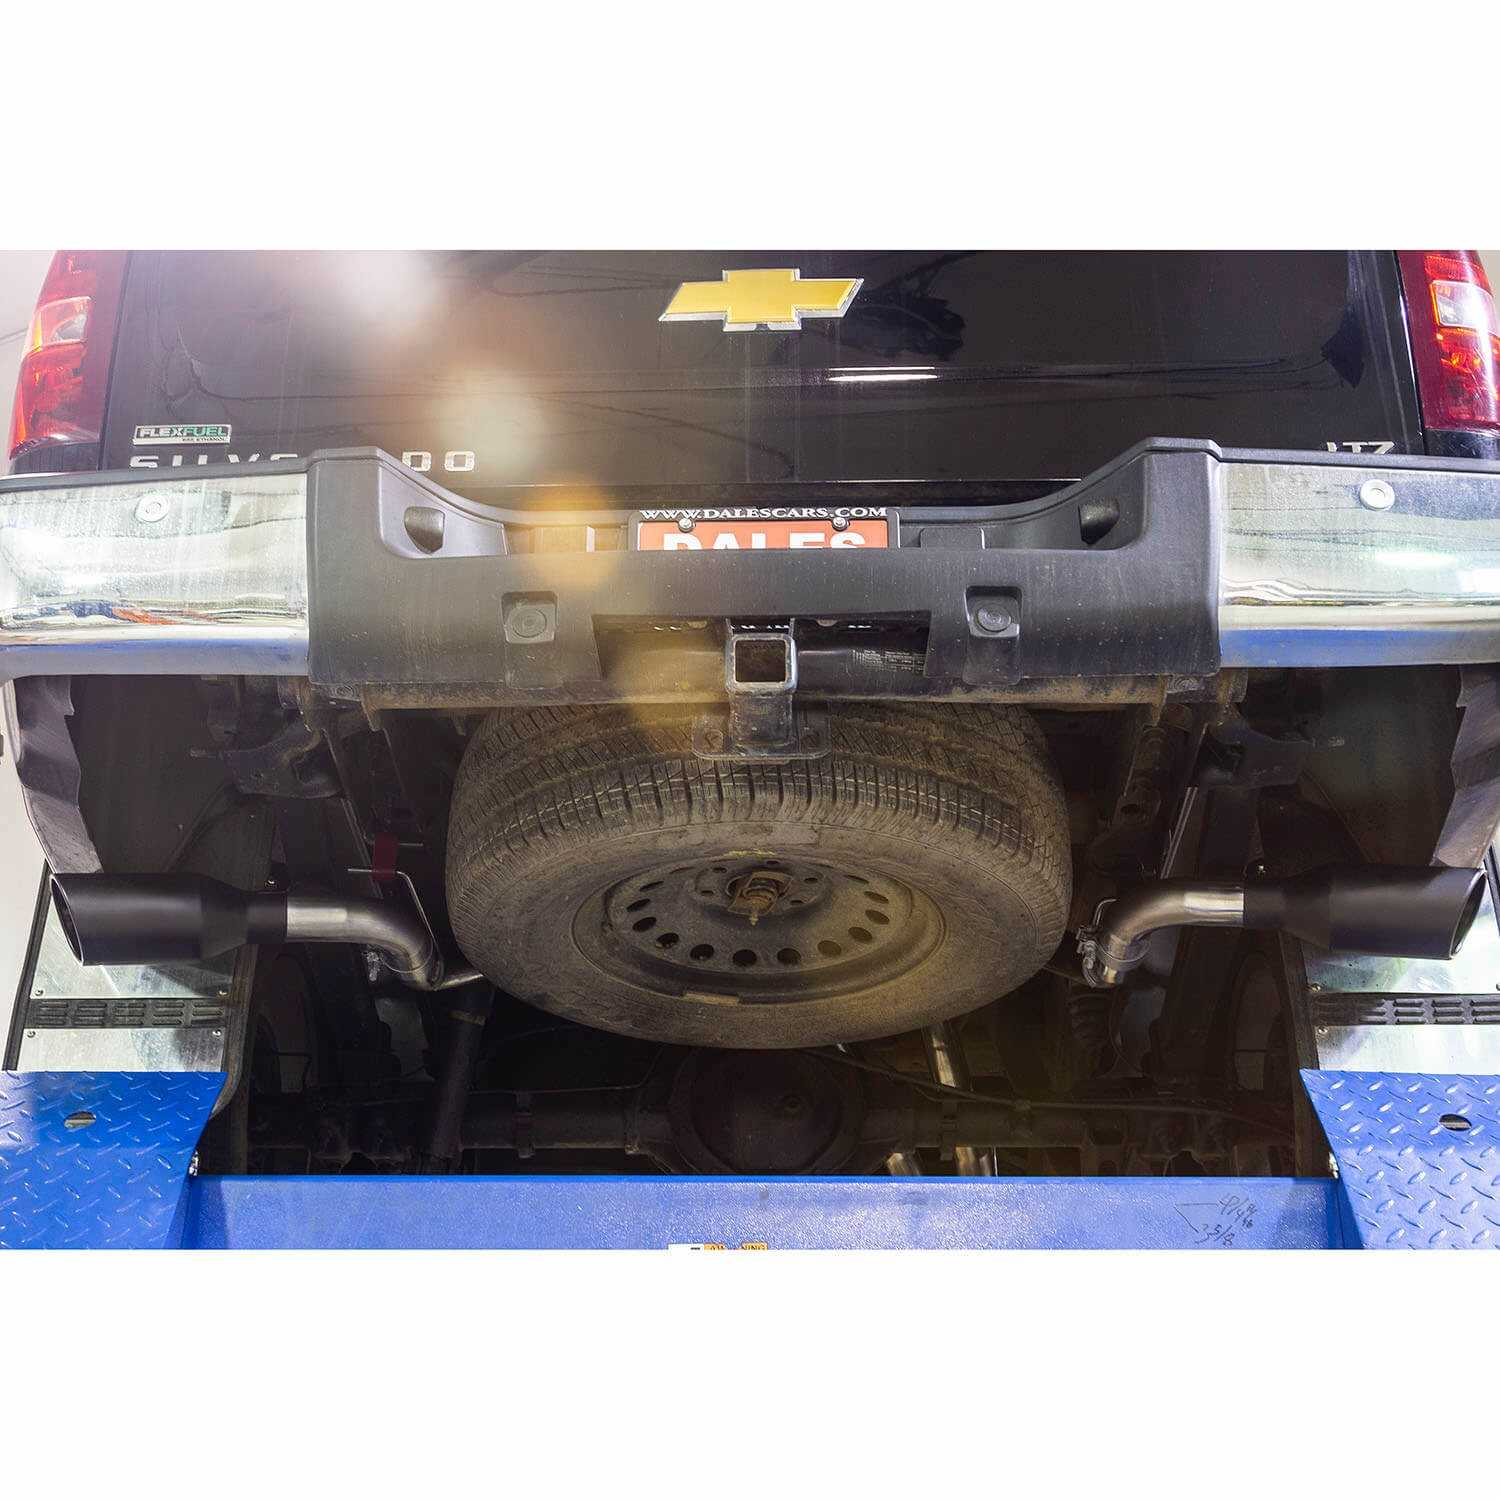 717822 Flowmaster FlowFX Cat-Back Exhaust System